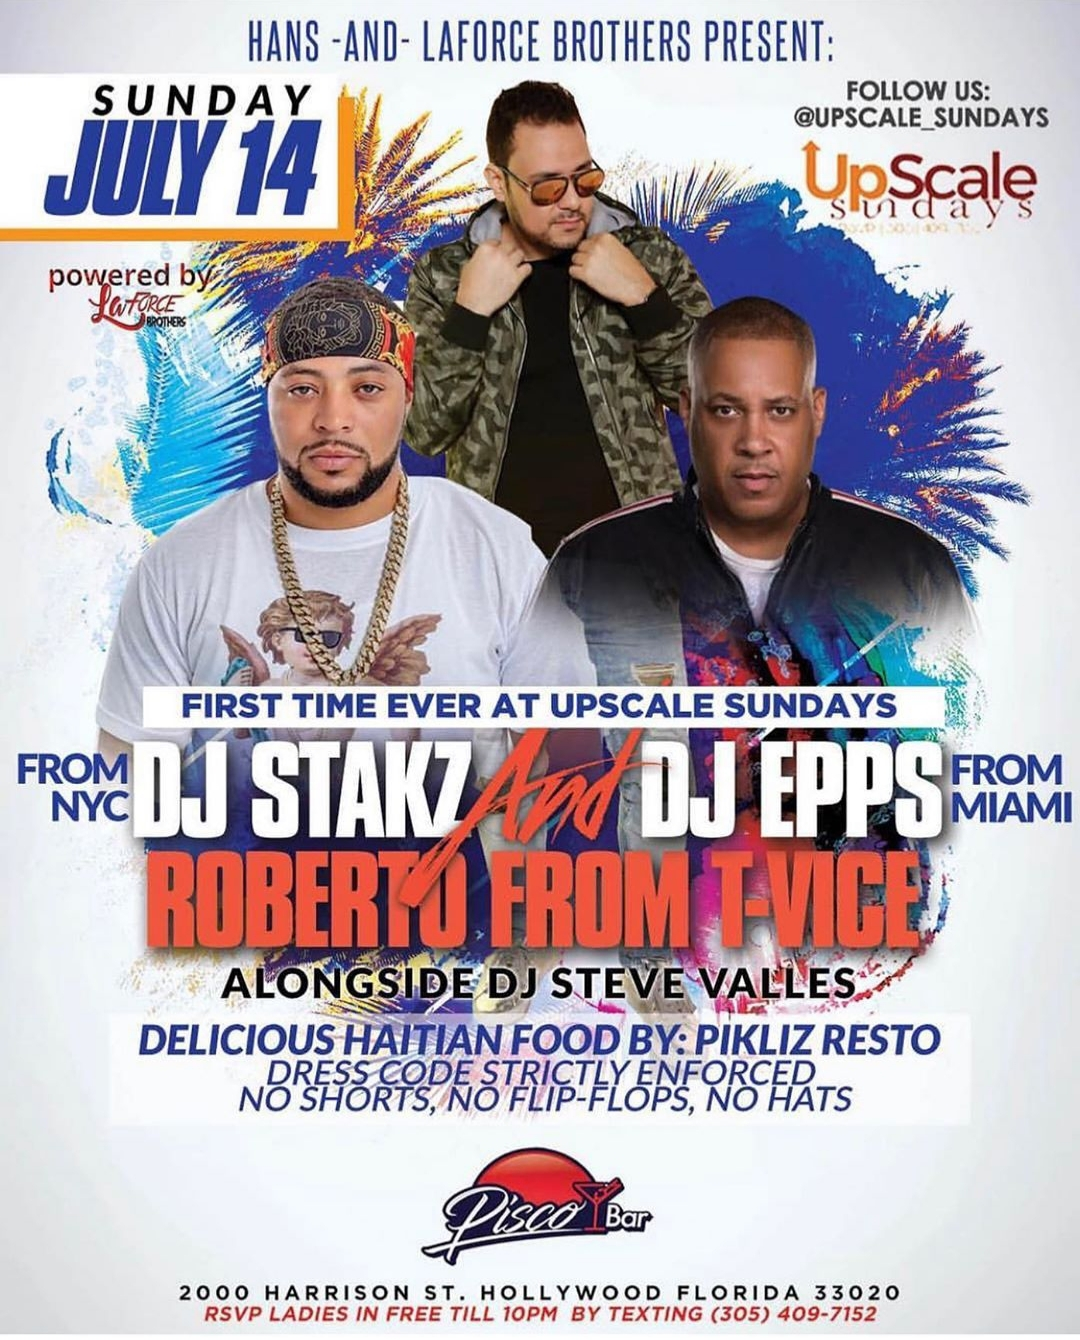 Upscale Sunday - July 14.jpg